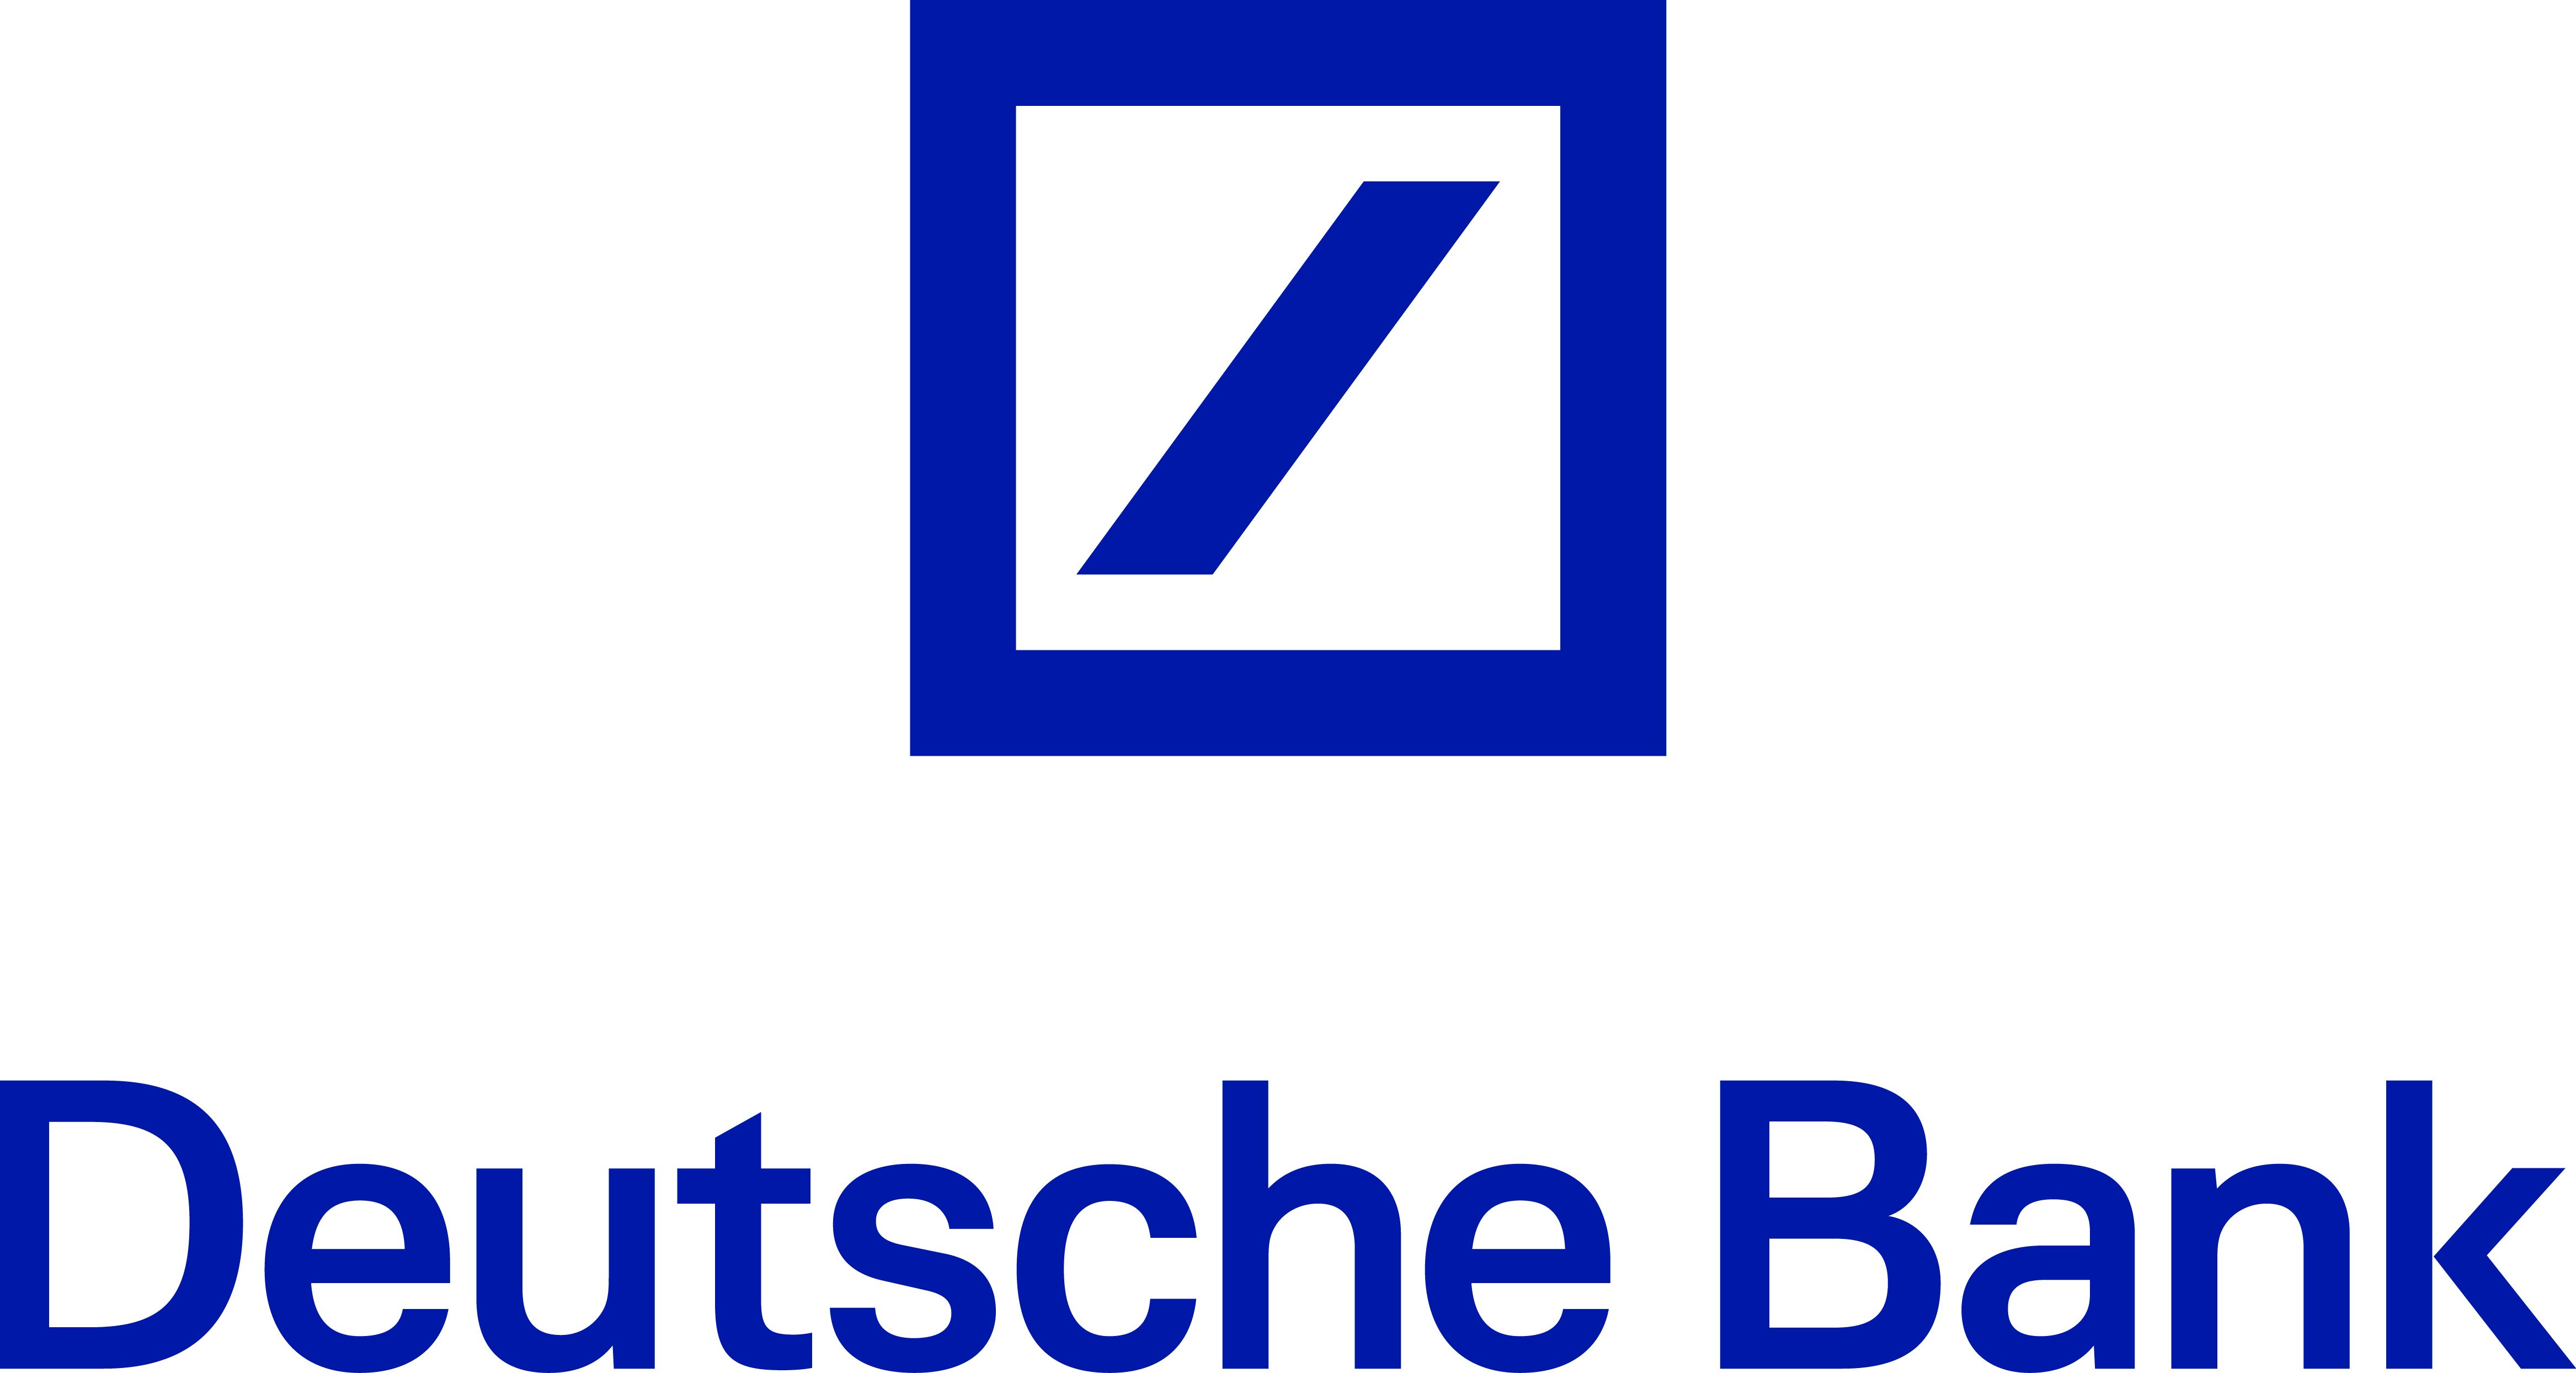 Deutsche Bank Logo - Deutsche-Bank-logo | HRO Today Services and Technology Association